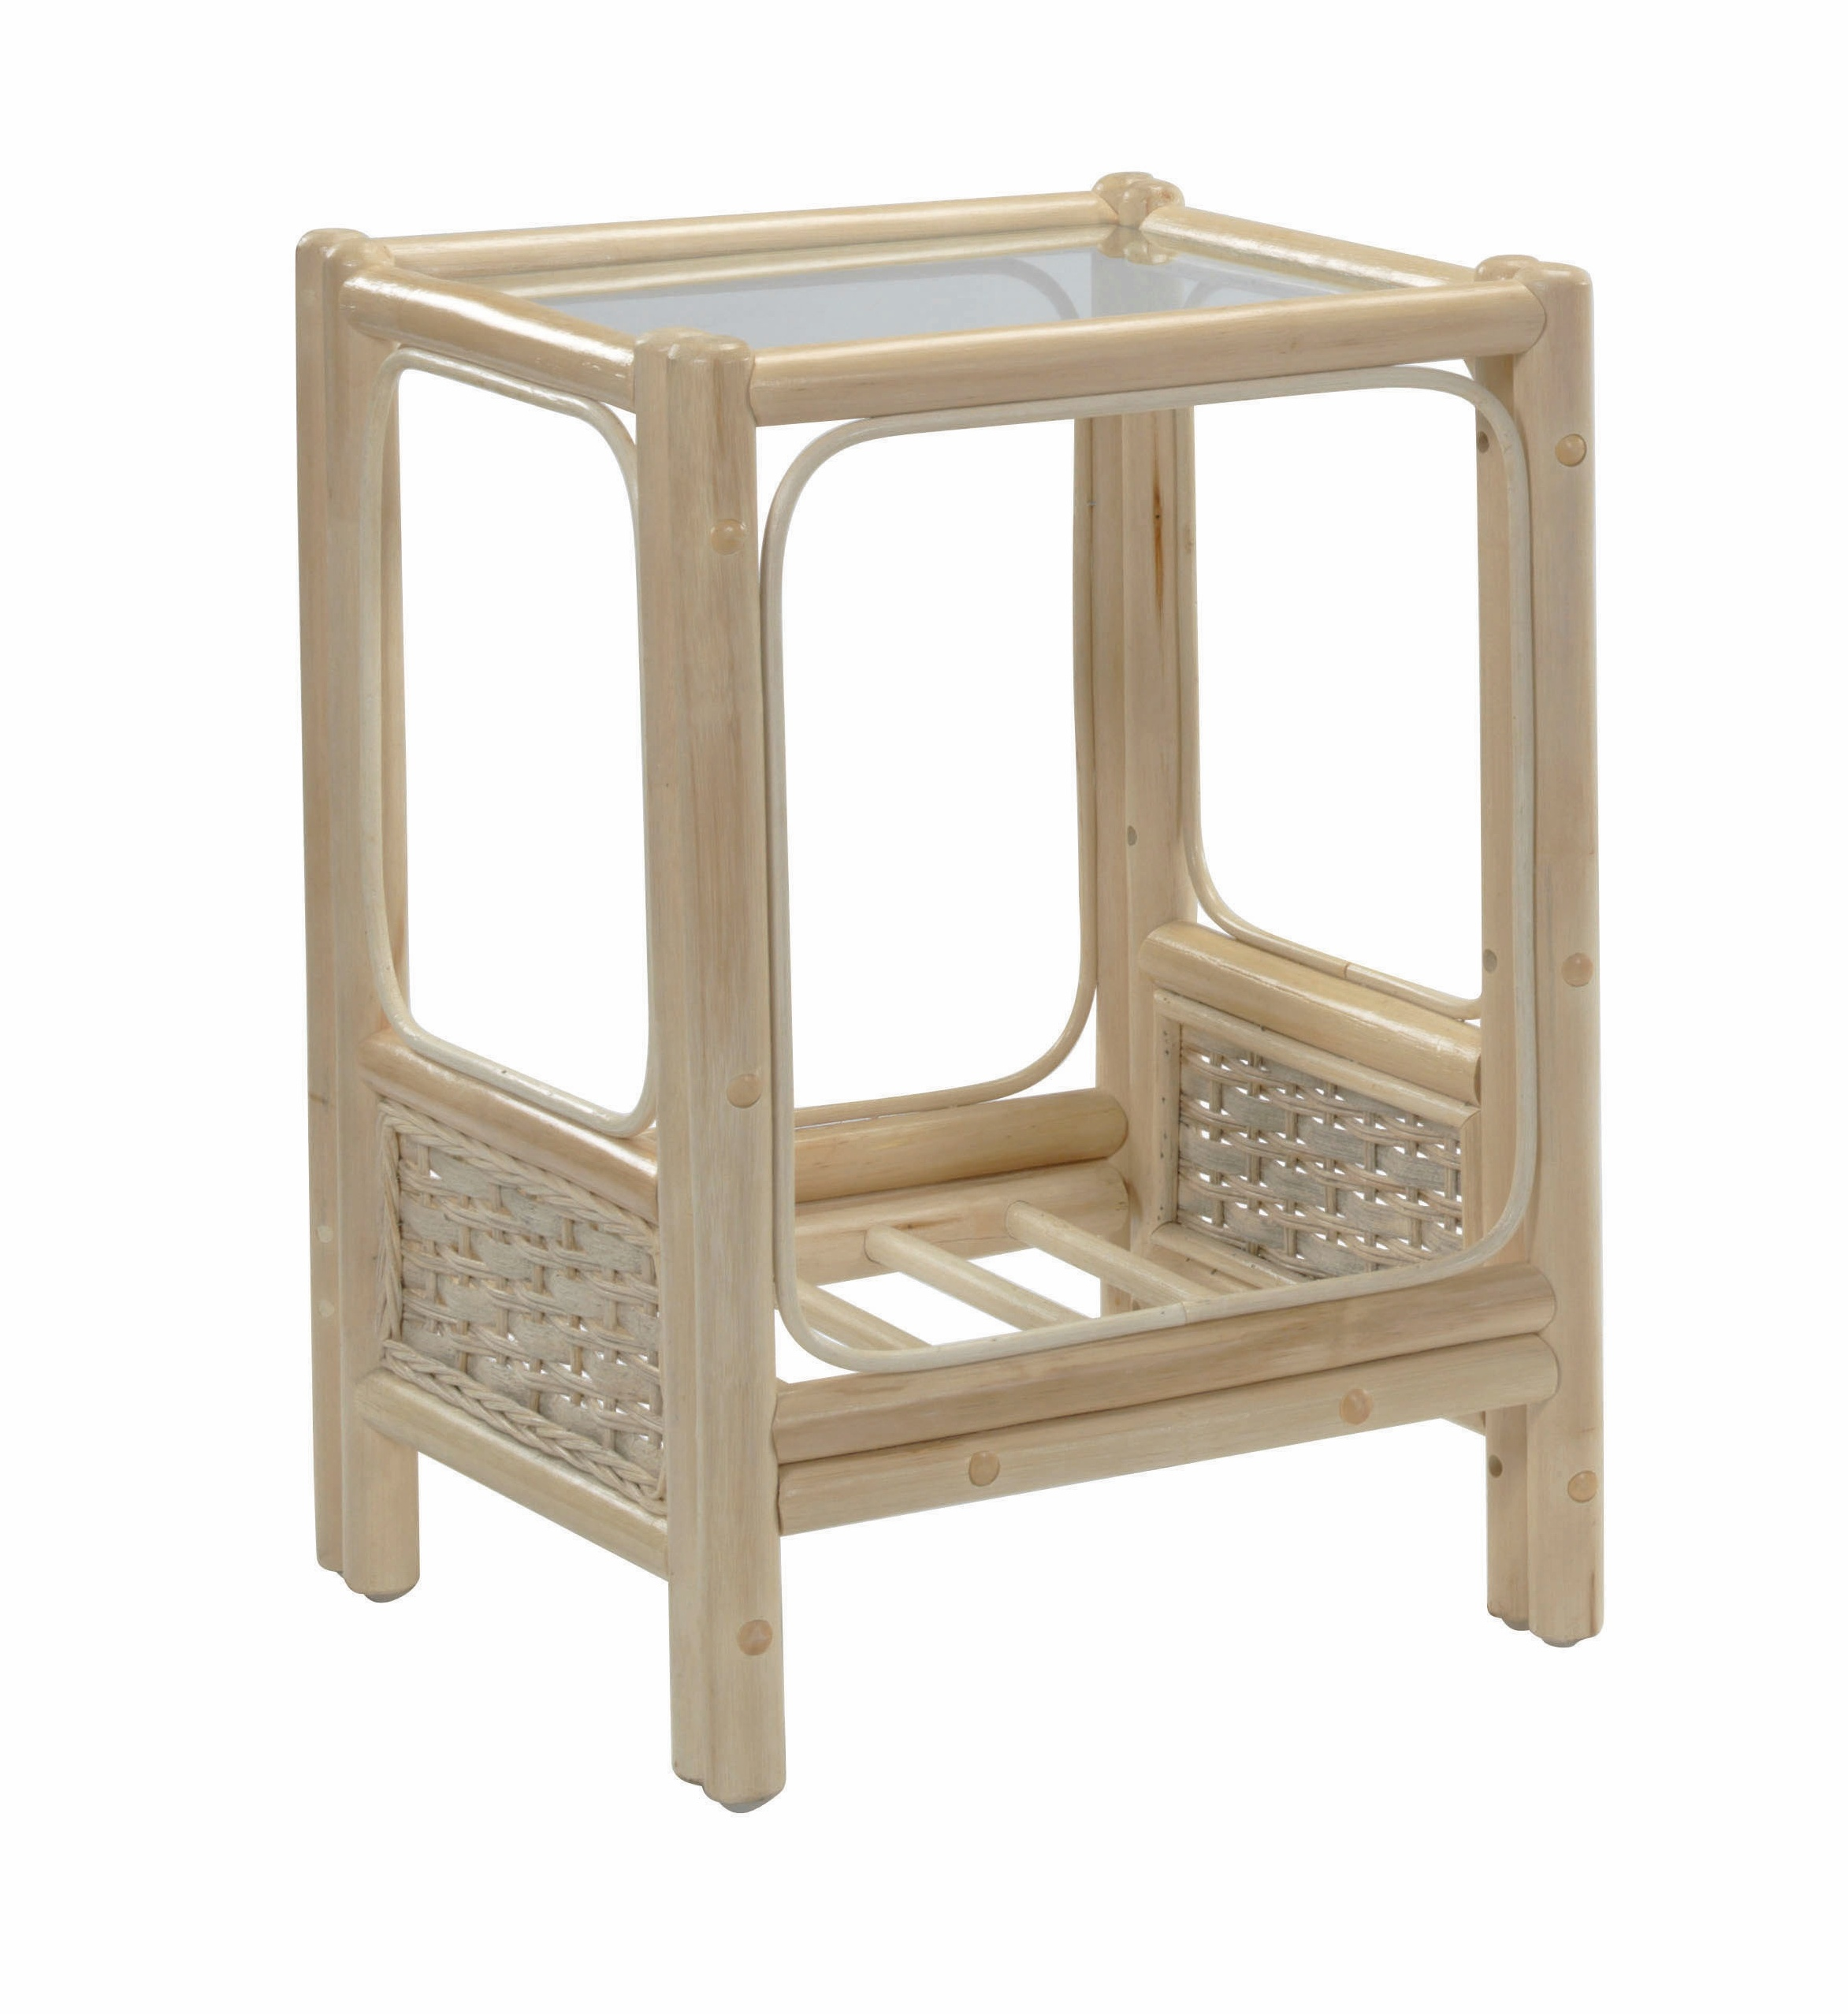 Desse Chelsea Rattan Lamp table sold at Highgate Furniture Southend On sea